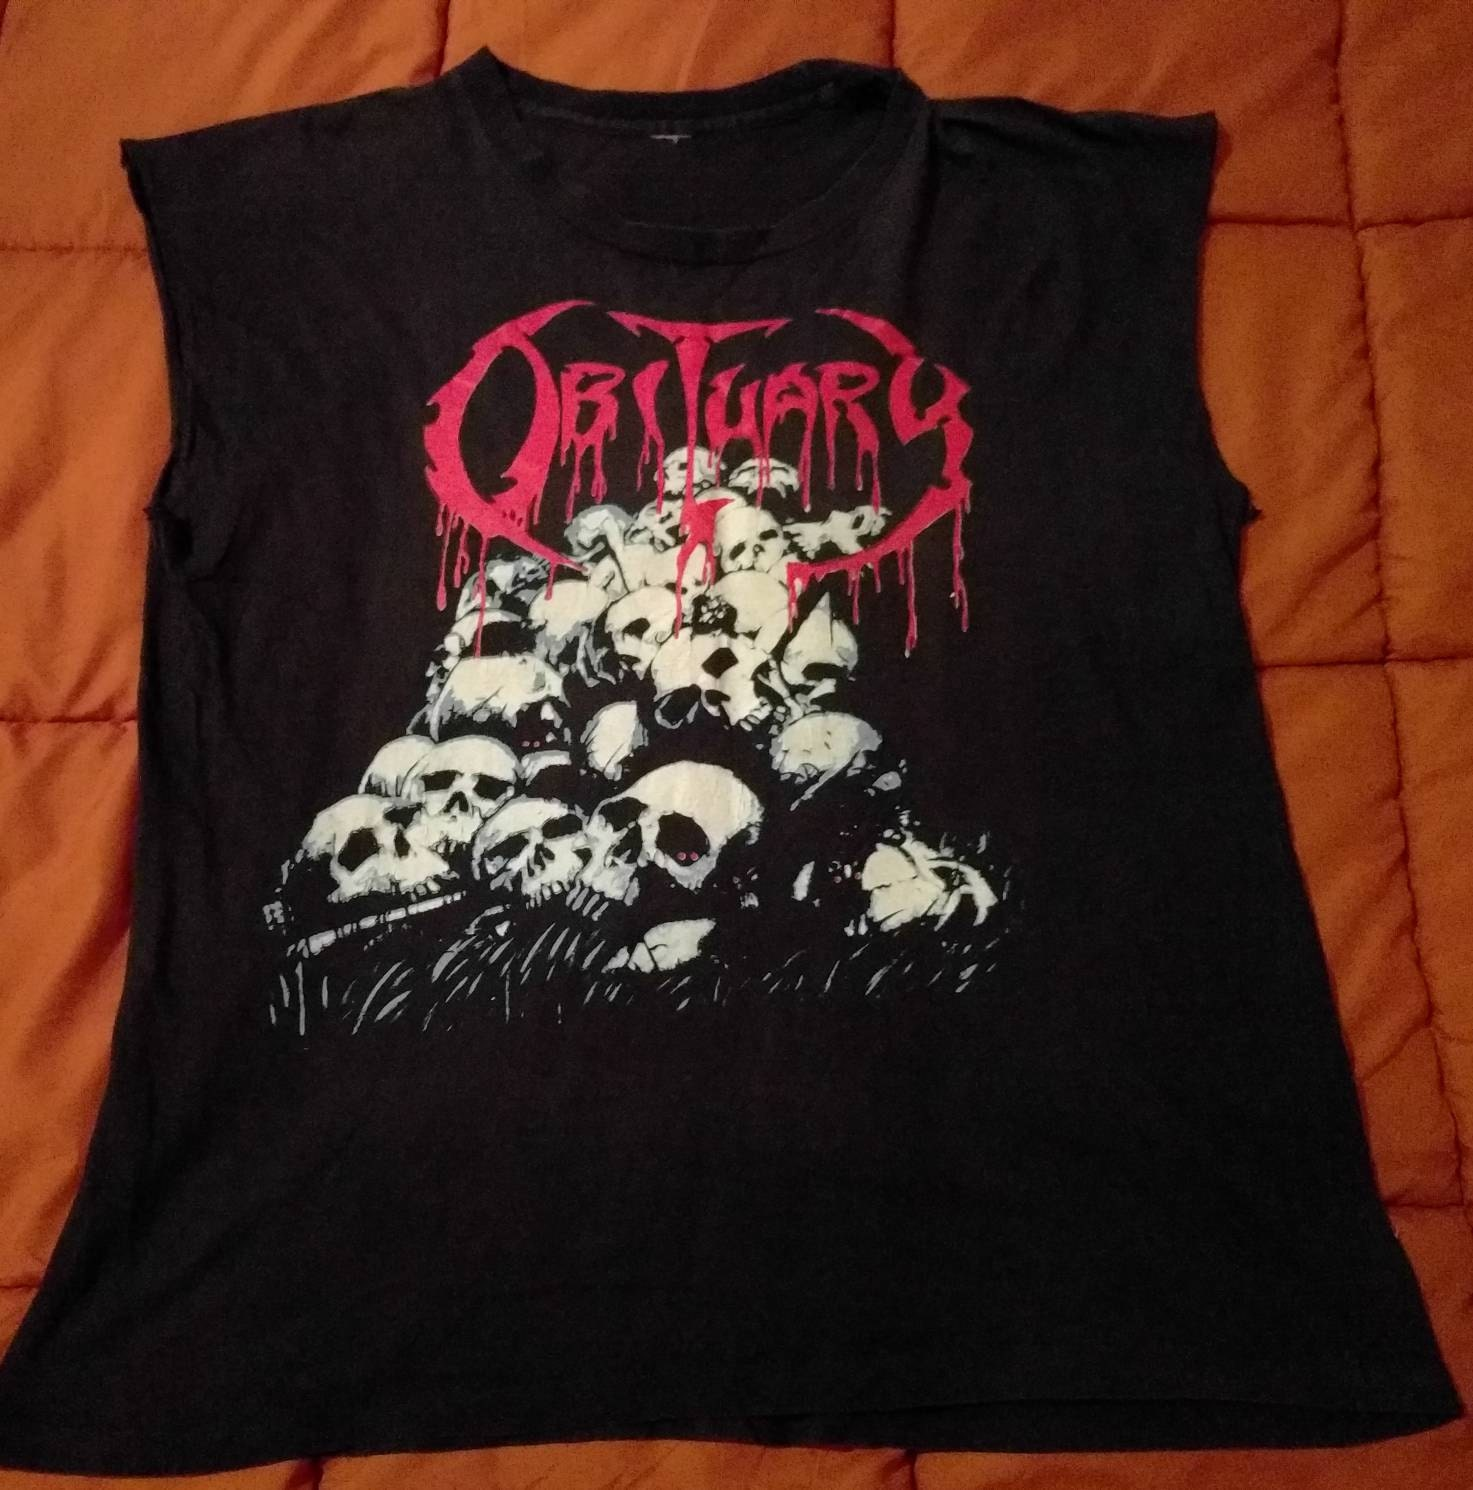 Black death t shirt european tour - Details Very Rare Tour Shirt From This Great Death